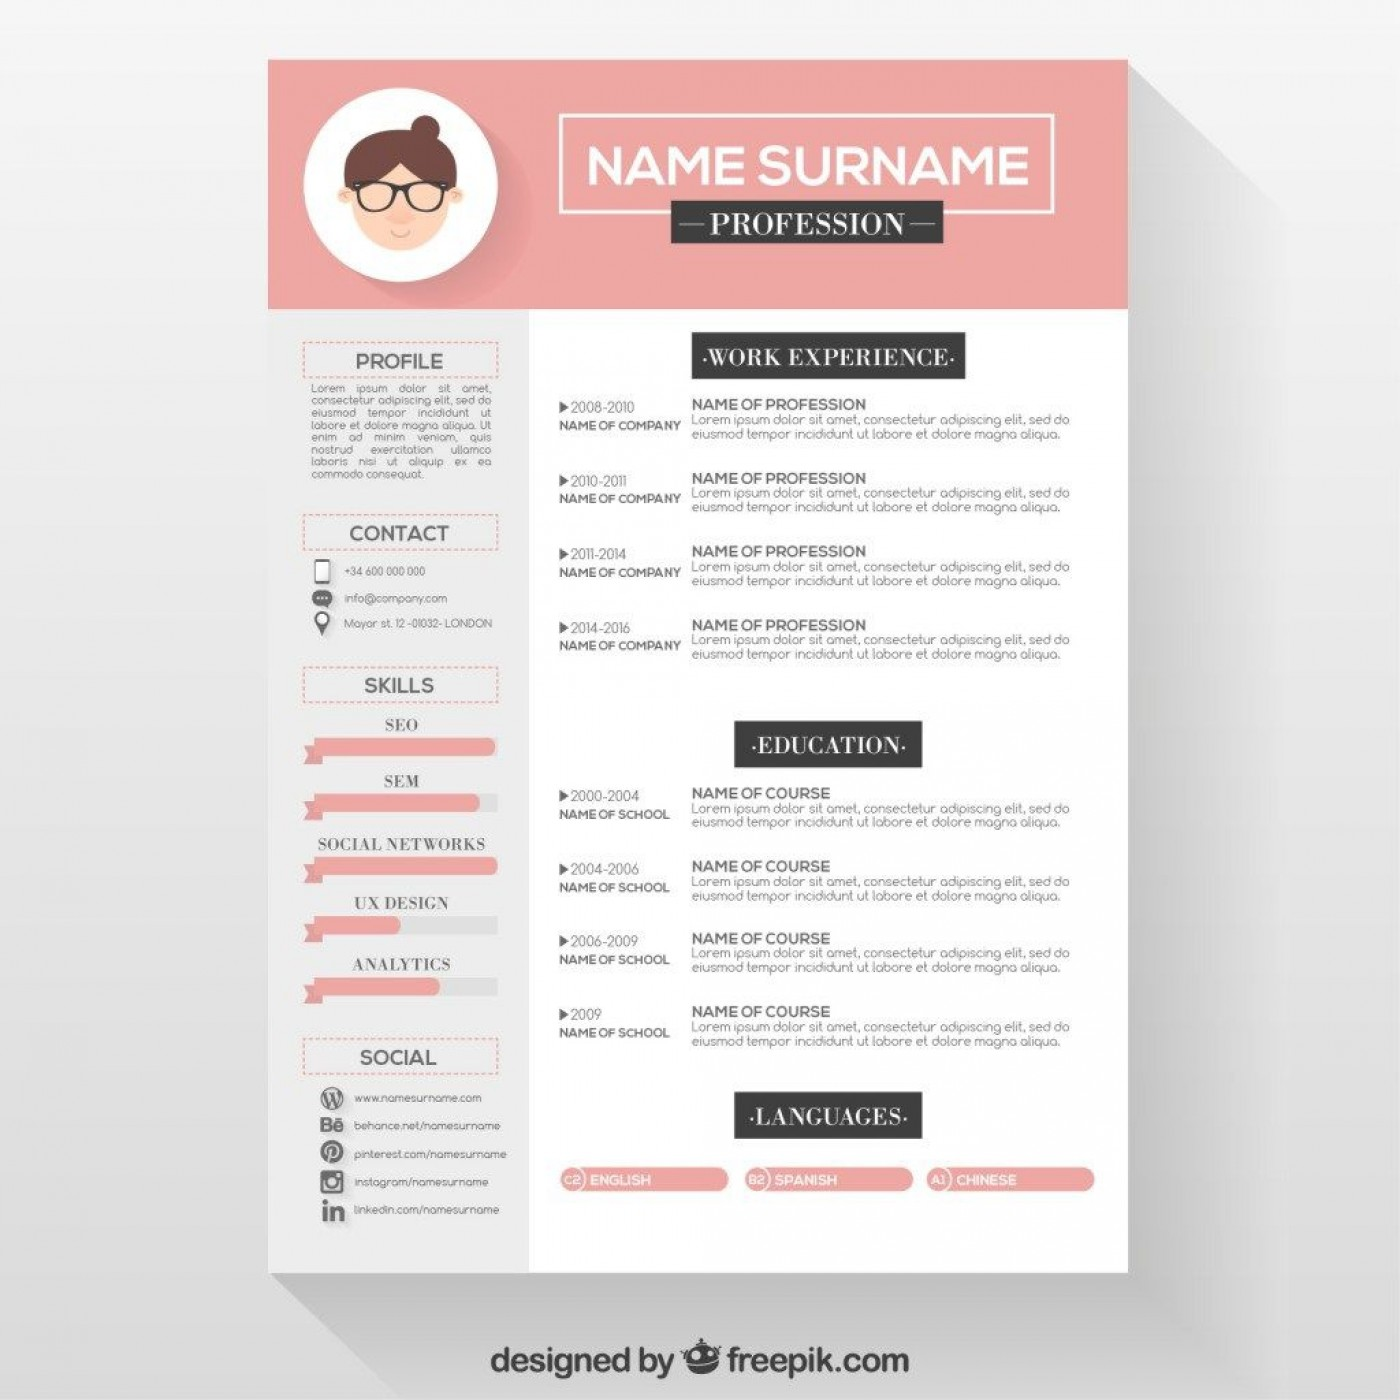 005 Stunning Download Resume Template Free Picture  For Mac Best Creative Professional Microsoft Word1400